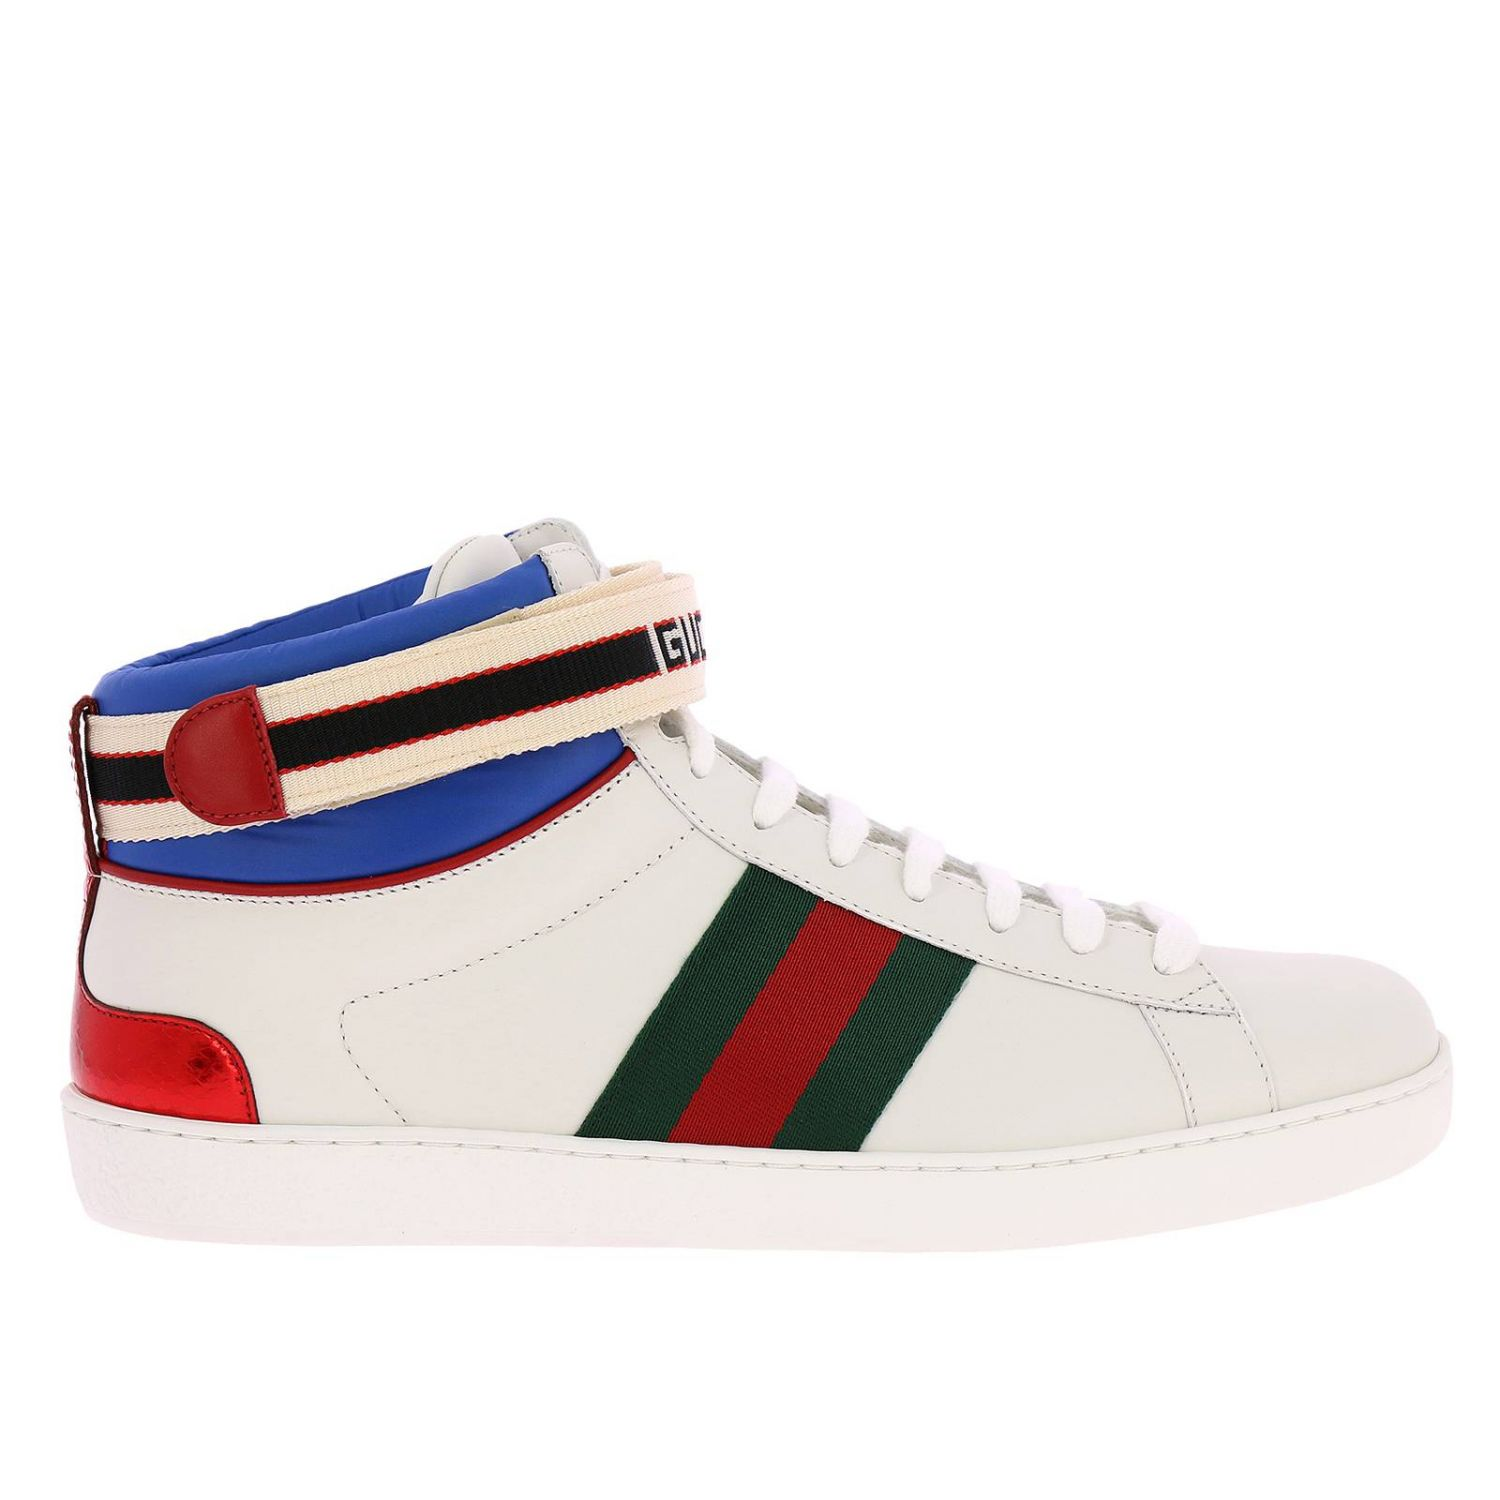 Sneakers New Ace High Sneakers In Soft Leather With Web Gucci Nylon Bands 8399307